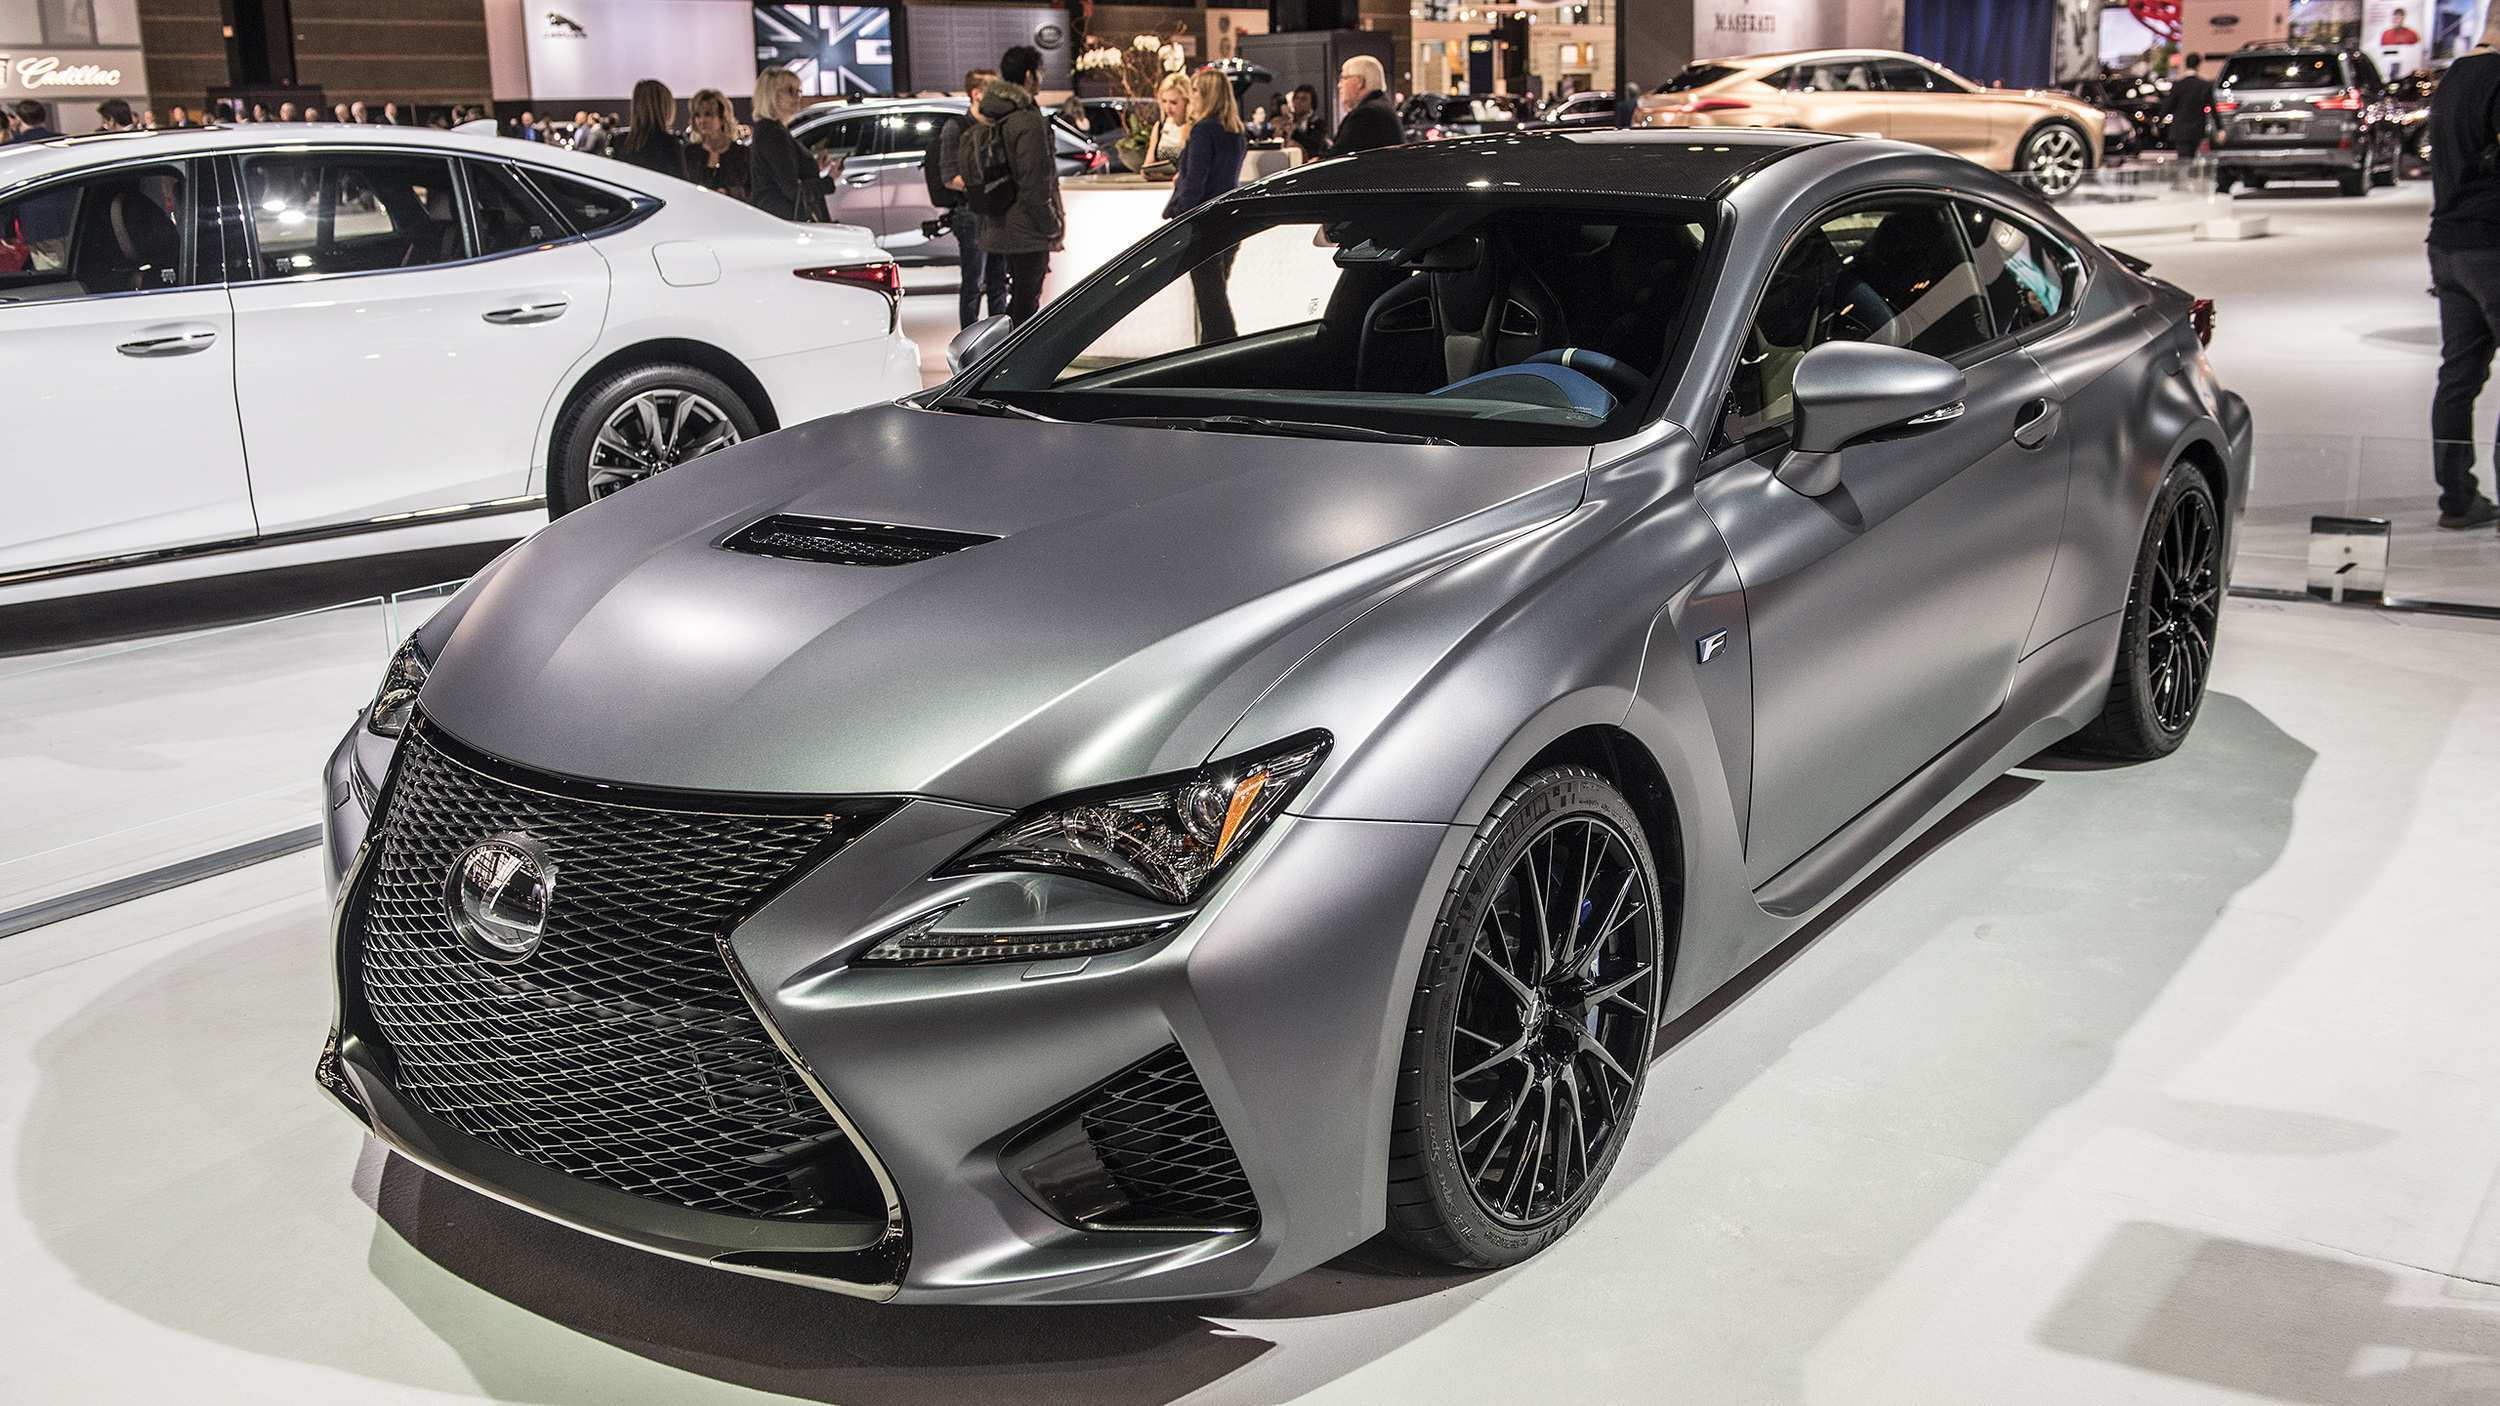 38 All New Lexus Rcf 2019 Specs And Review